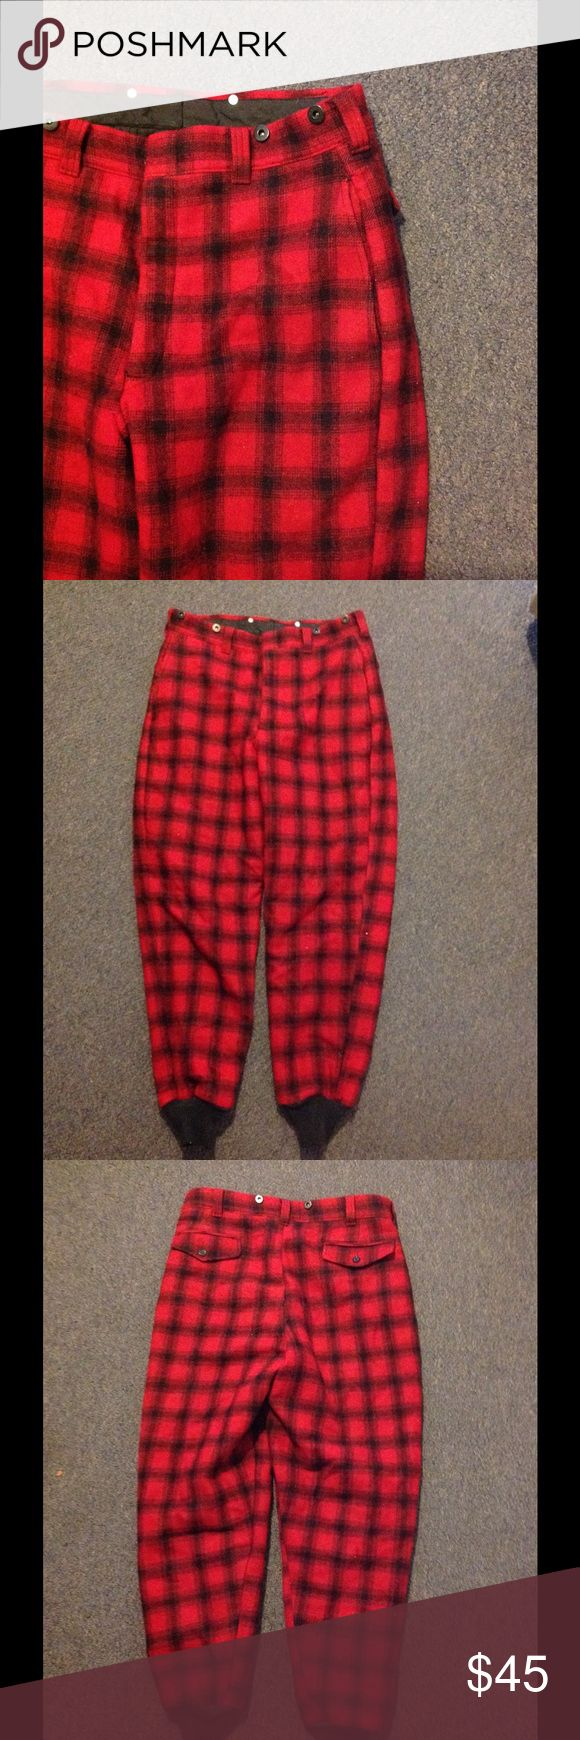 Woolrich Red Black  Buffalo Plaid Hunting Pants 34 Nice pair of Woolrich wool hunting pants. Red and black plaid with a quilted thinsulate lining. Pre owned nice condition. Size 34 Woolrich Pants